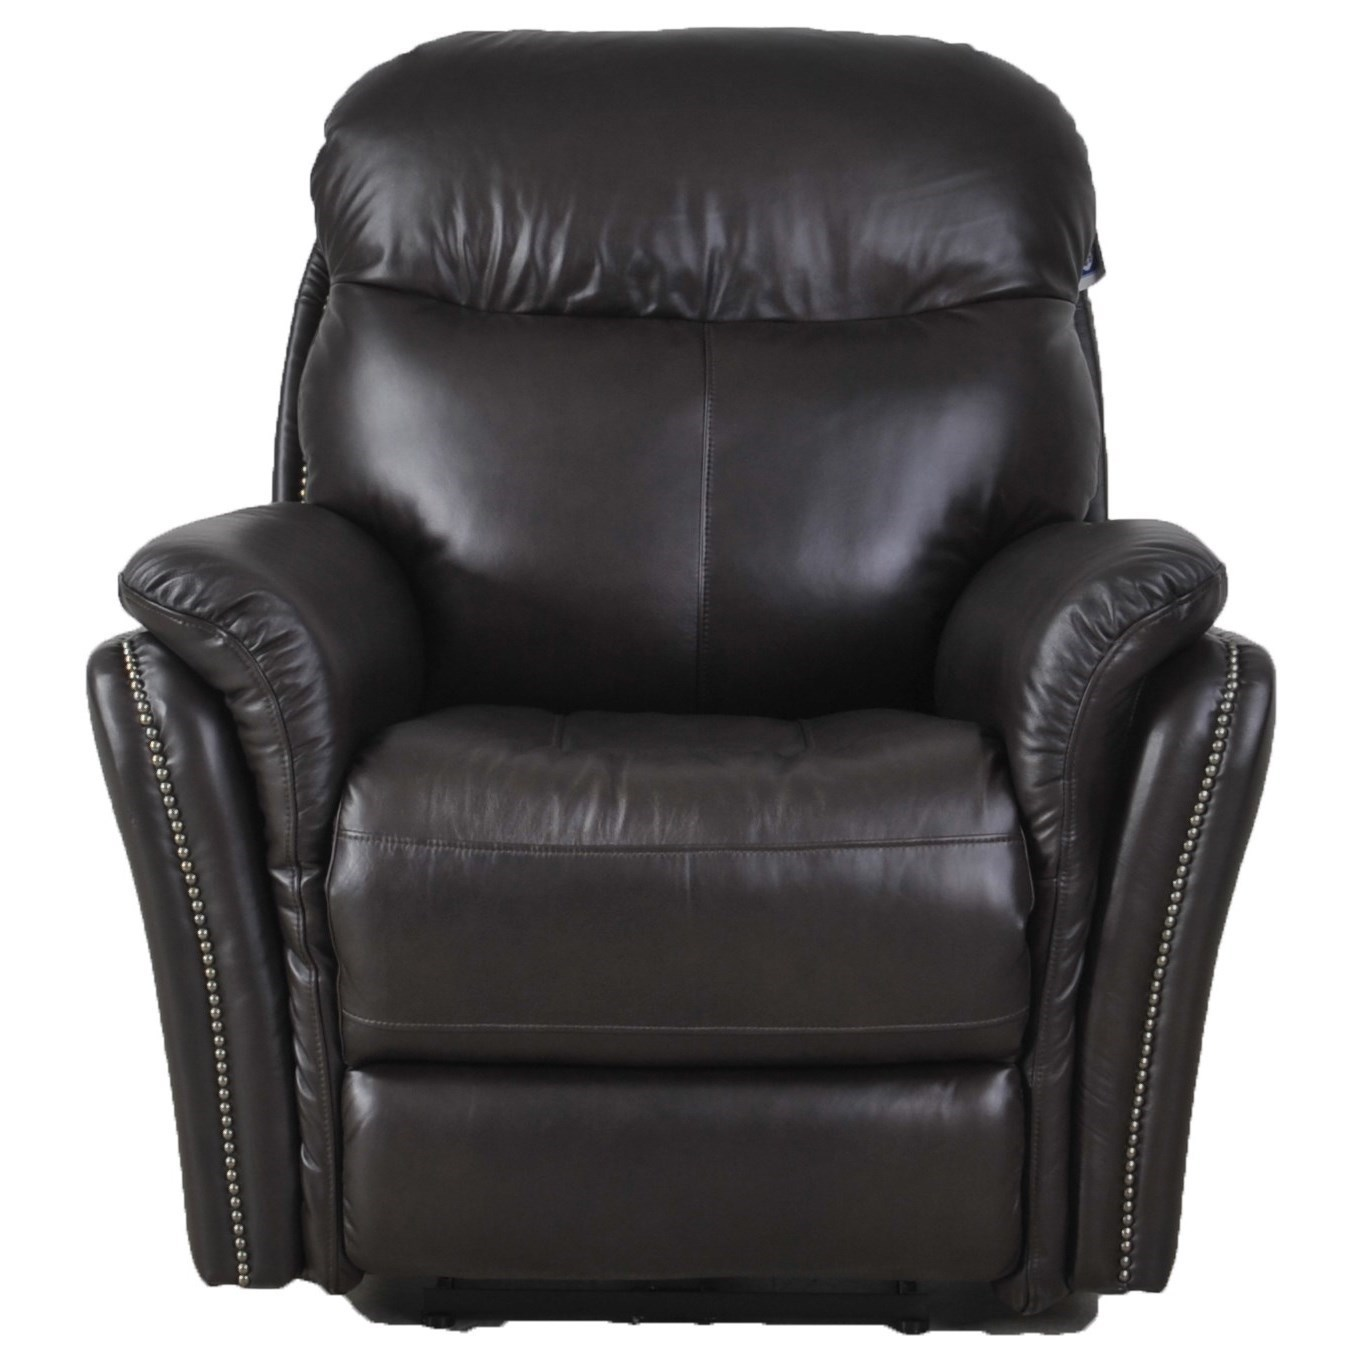 Recliner Pillow E1309 Transitional Electric Recliner With Pillow Arms By Futura Leather At Zak S Home